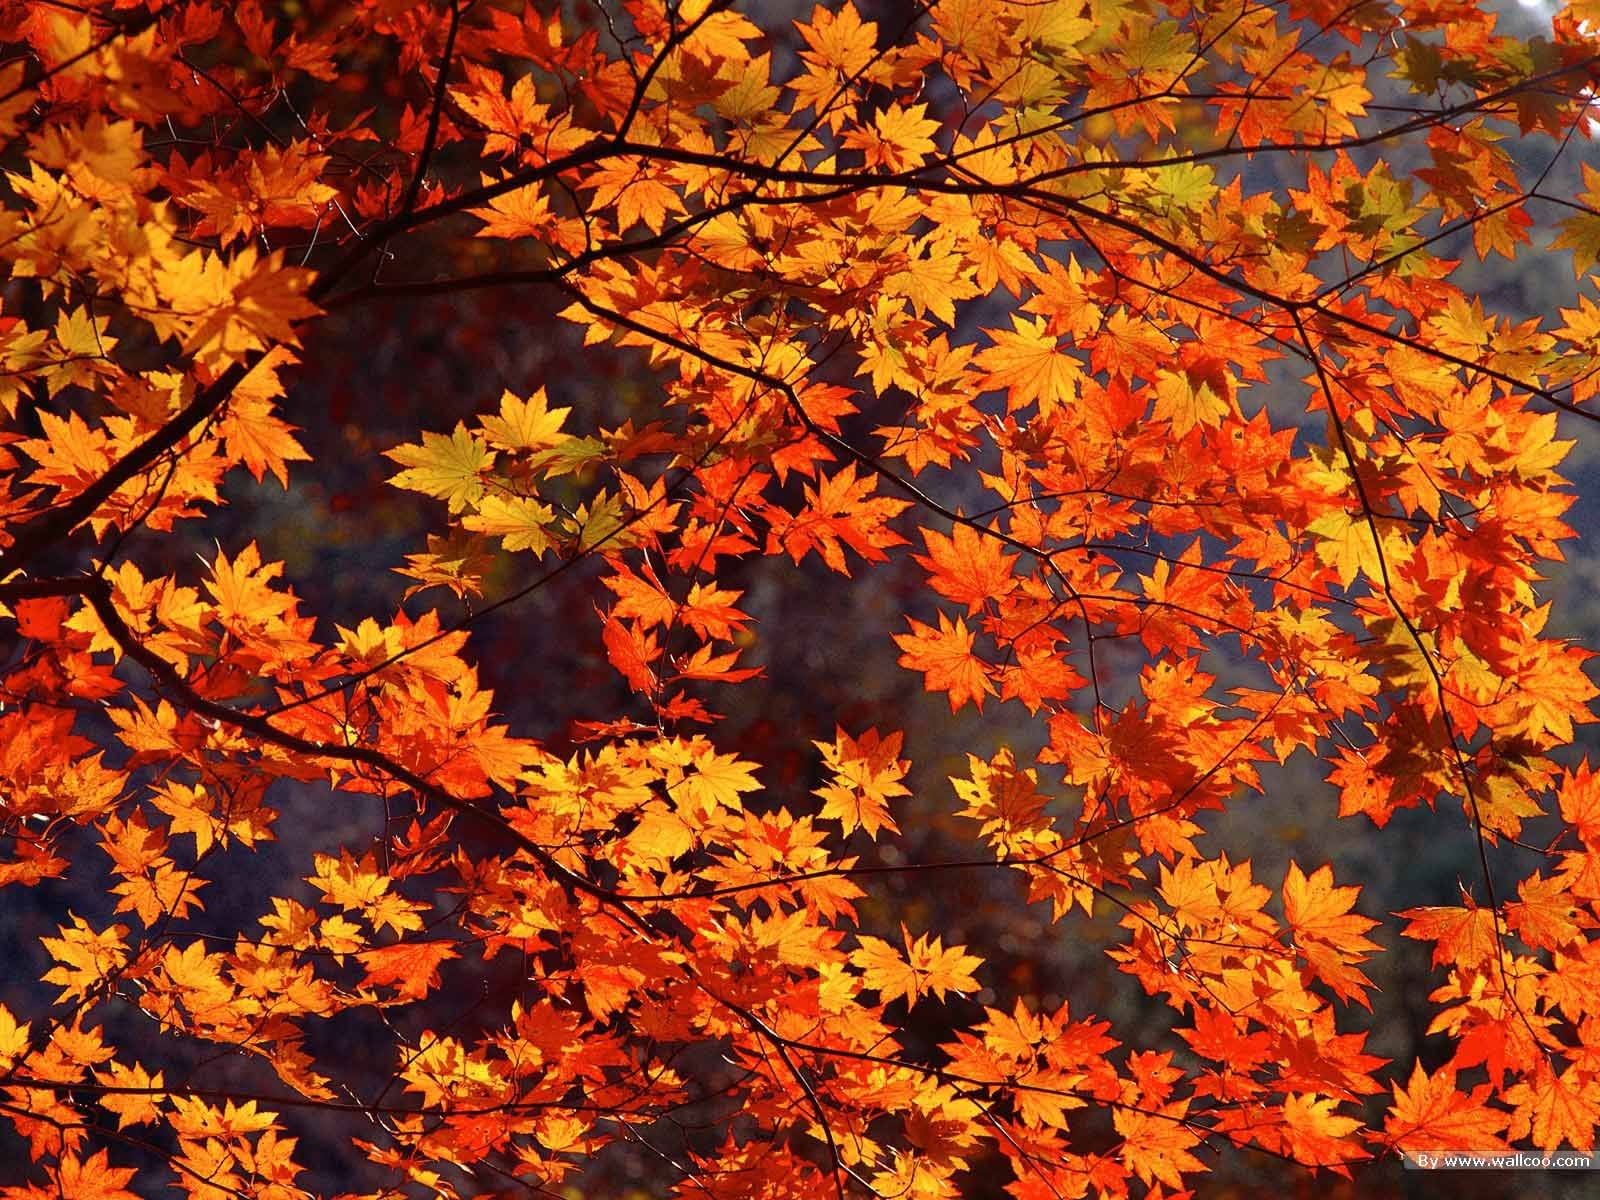 Free Desktop Wallpaper Autumn Leaves: Free Fall Photos For Desktop